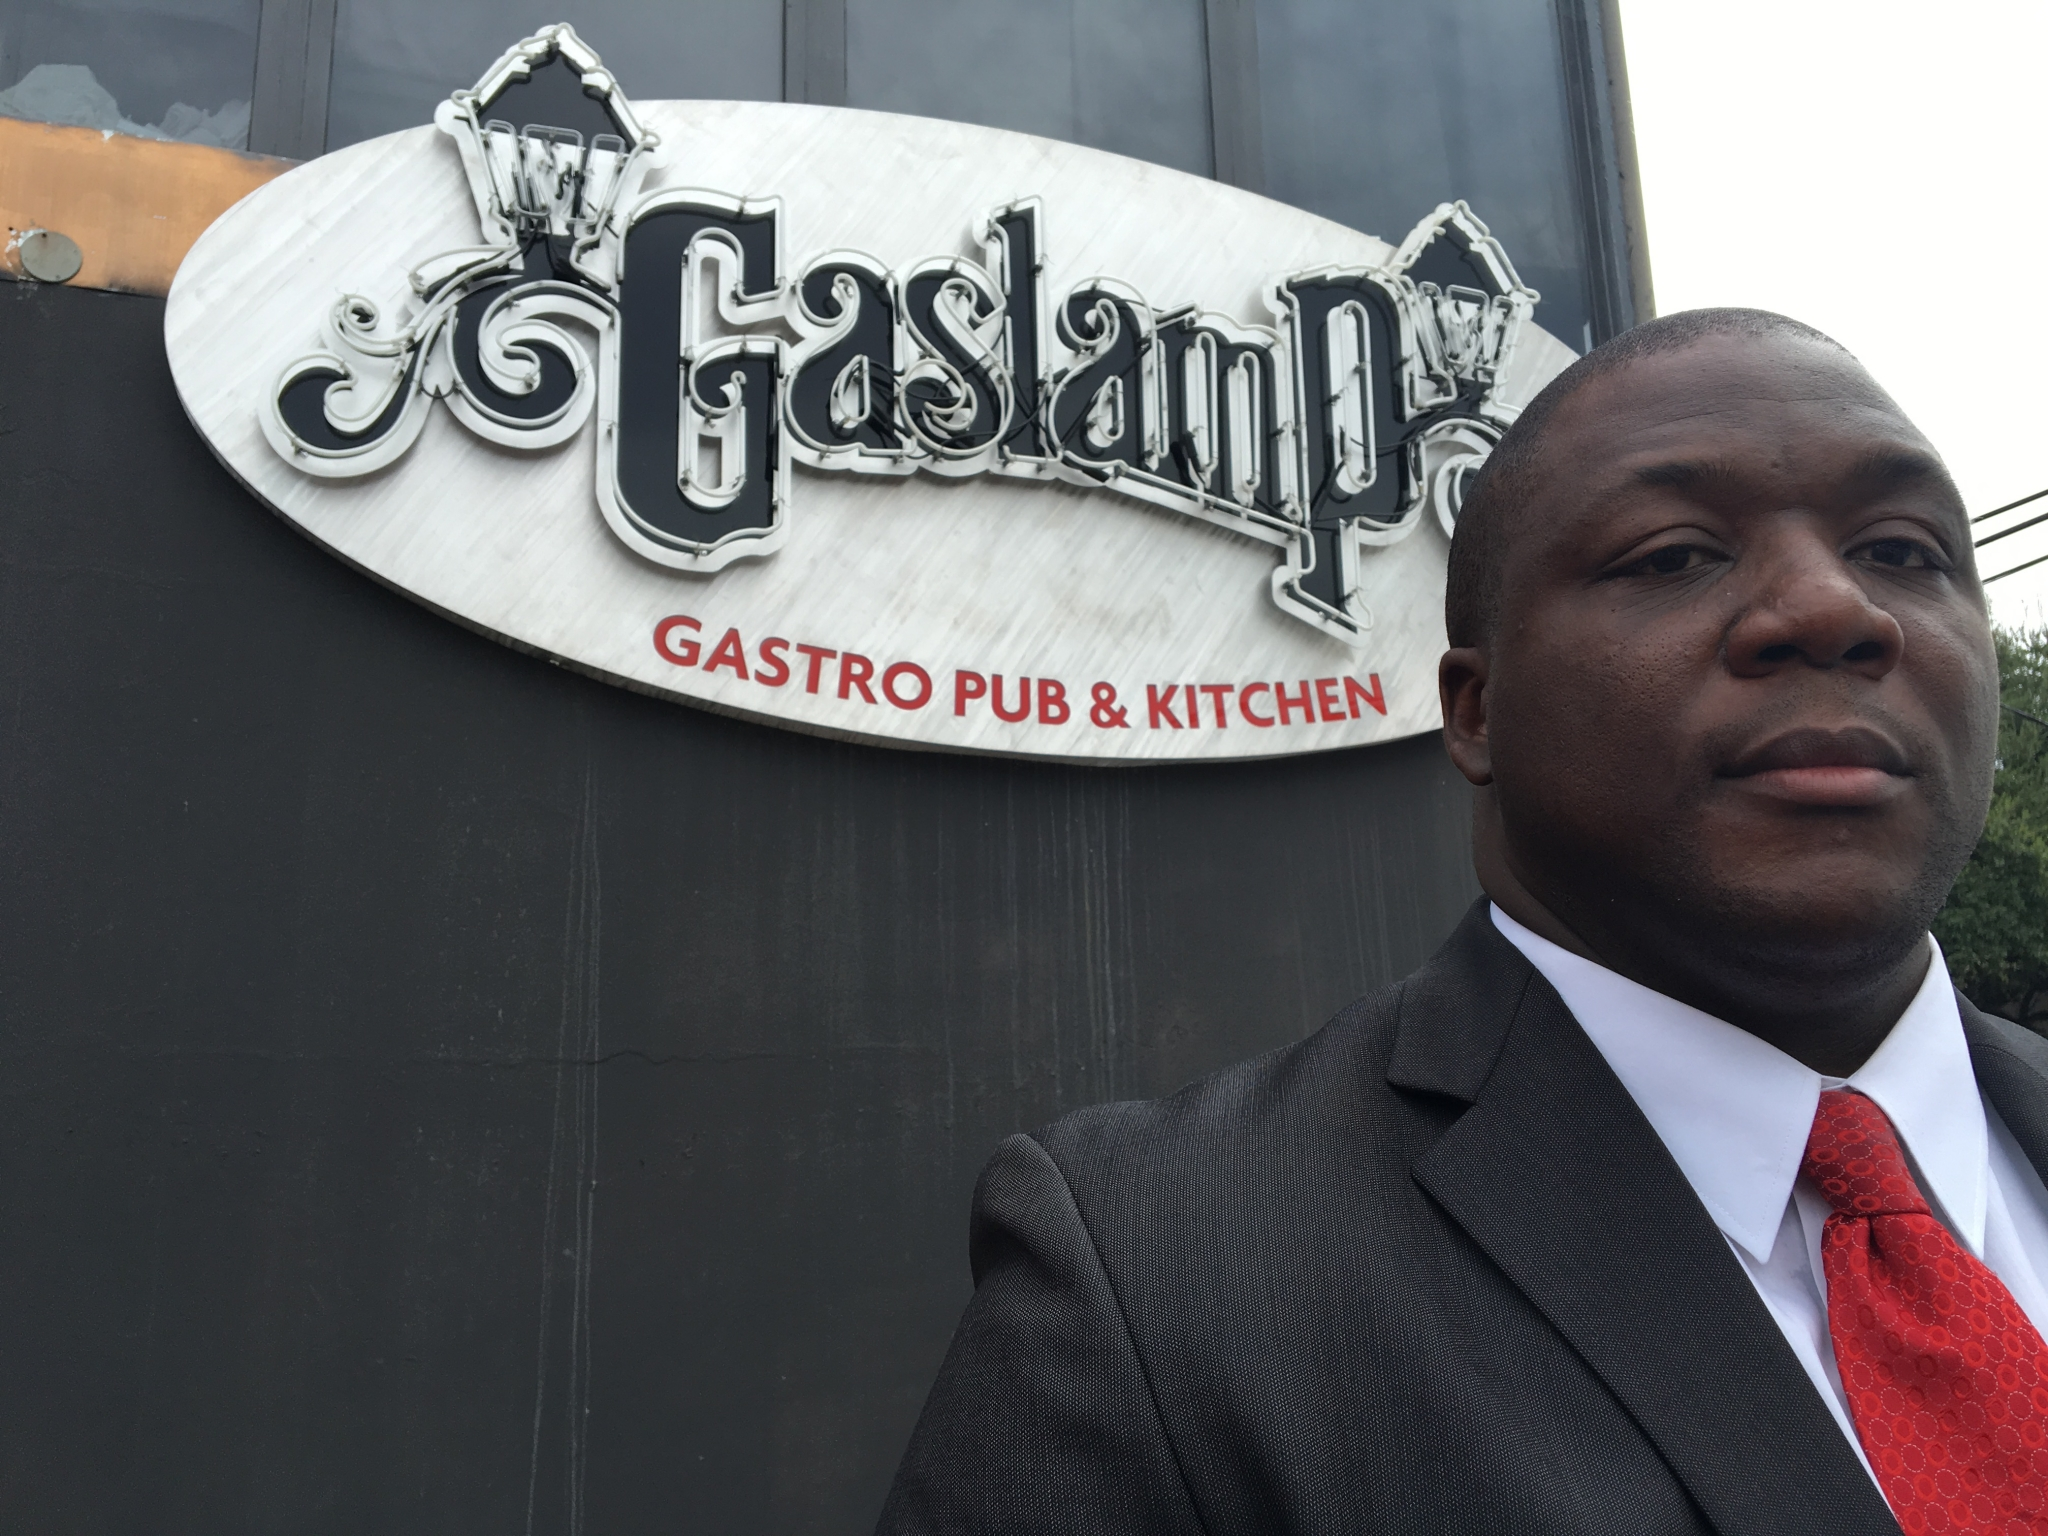 Jaguar Houston Central >> Lawyers for men who say they were discriminated against at Gaslamp file federal suit - Houston ...